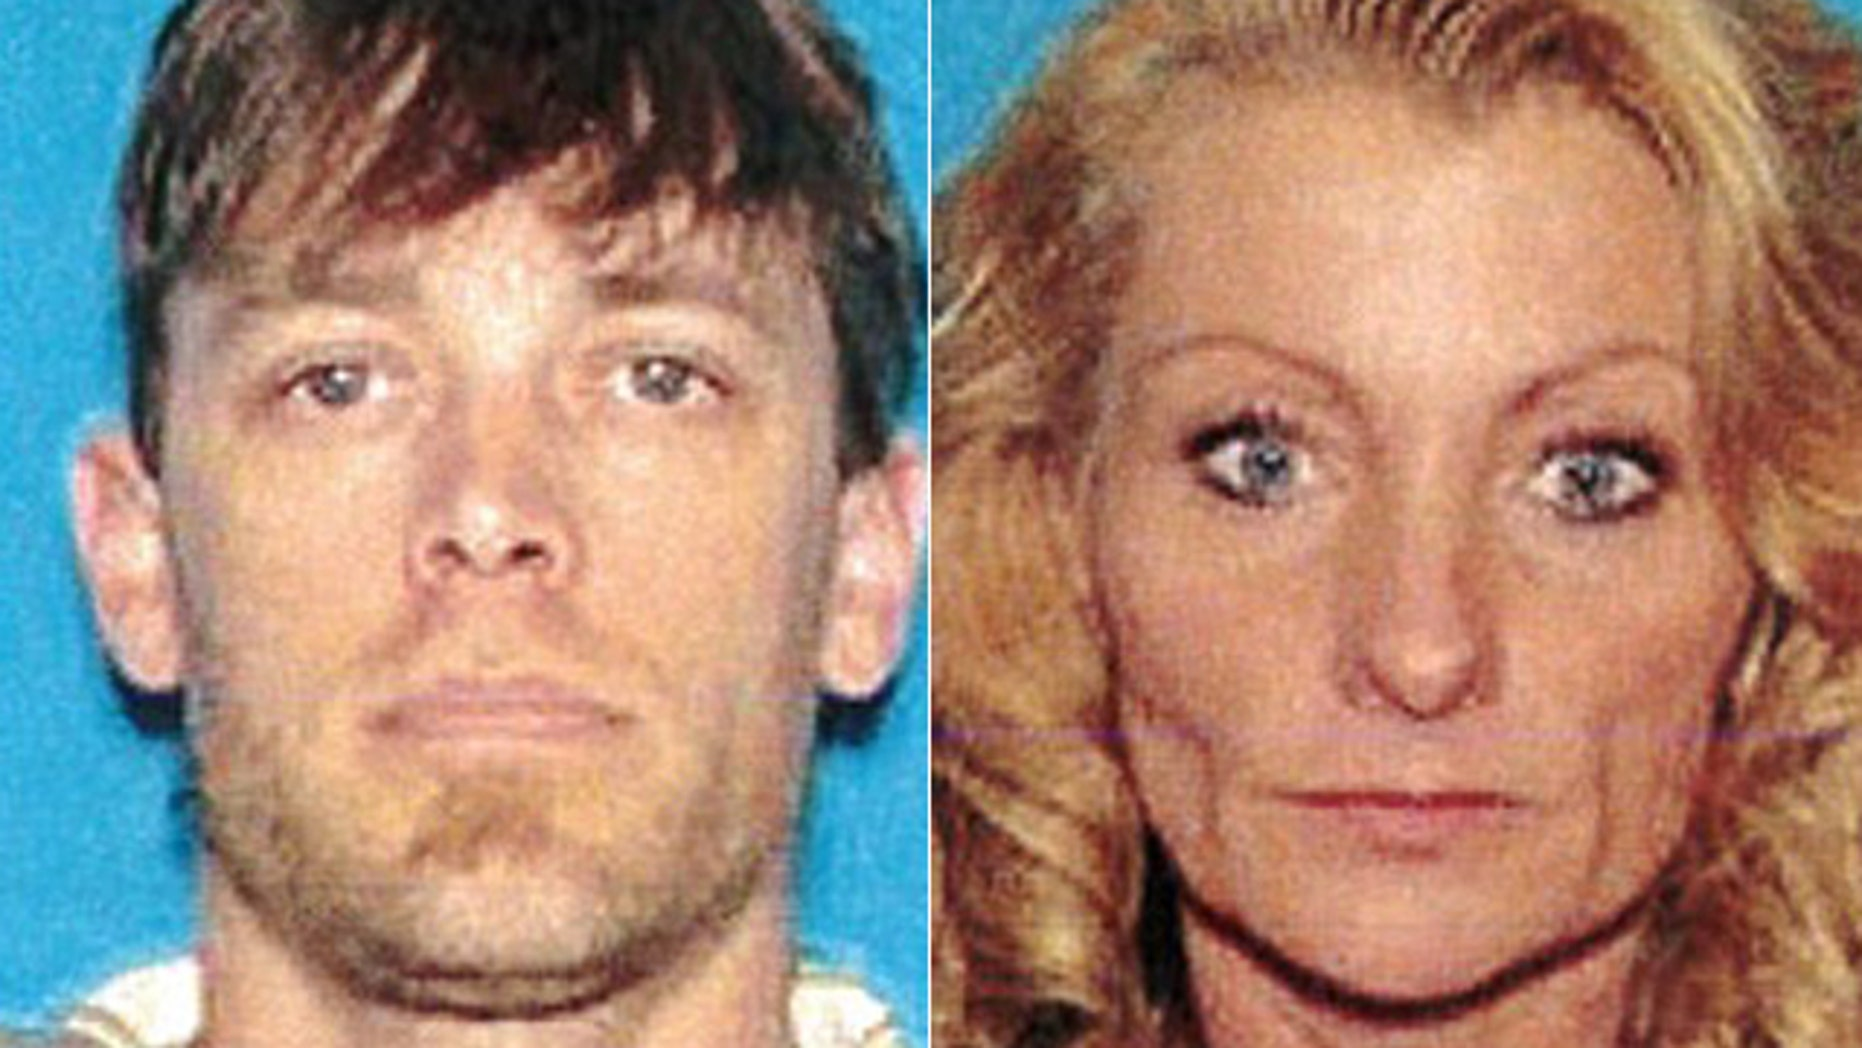 These undated photos show Jeremy White, who was wanted for second-degree murder, and Deena Aday, who is believed to be accompanying him.